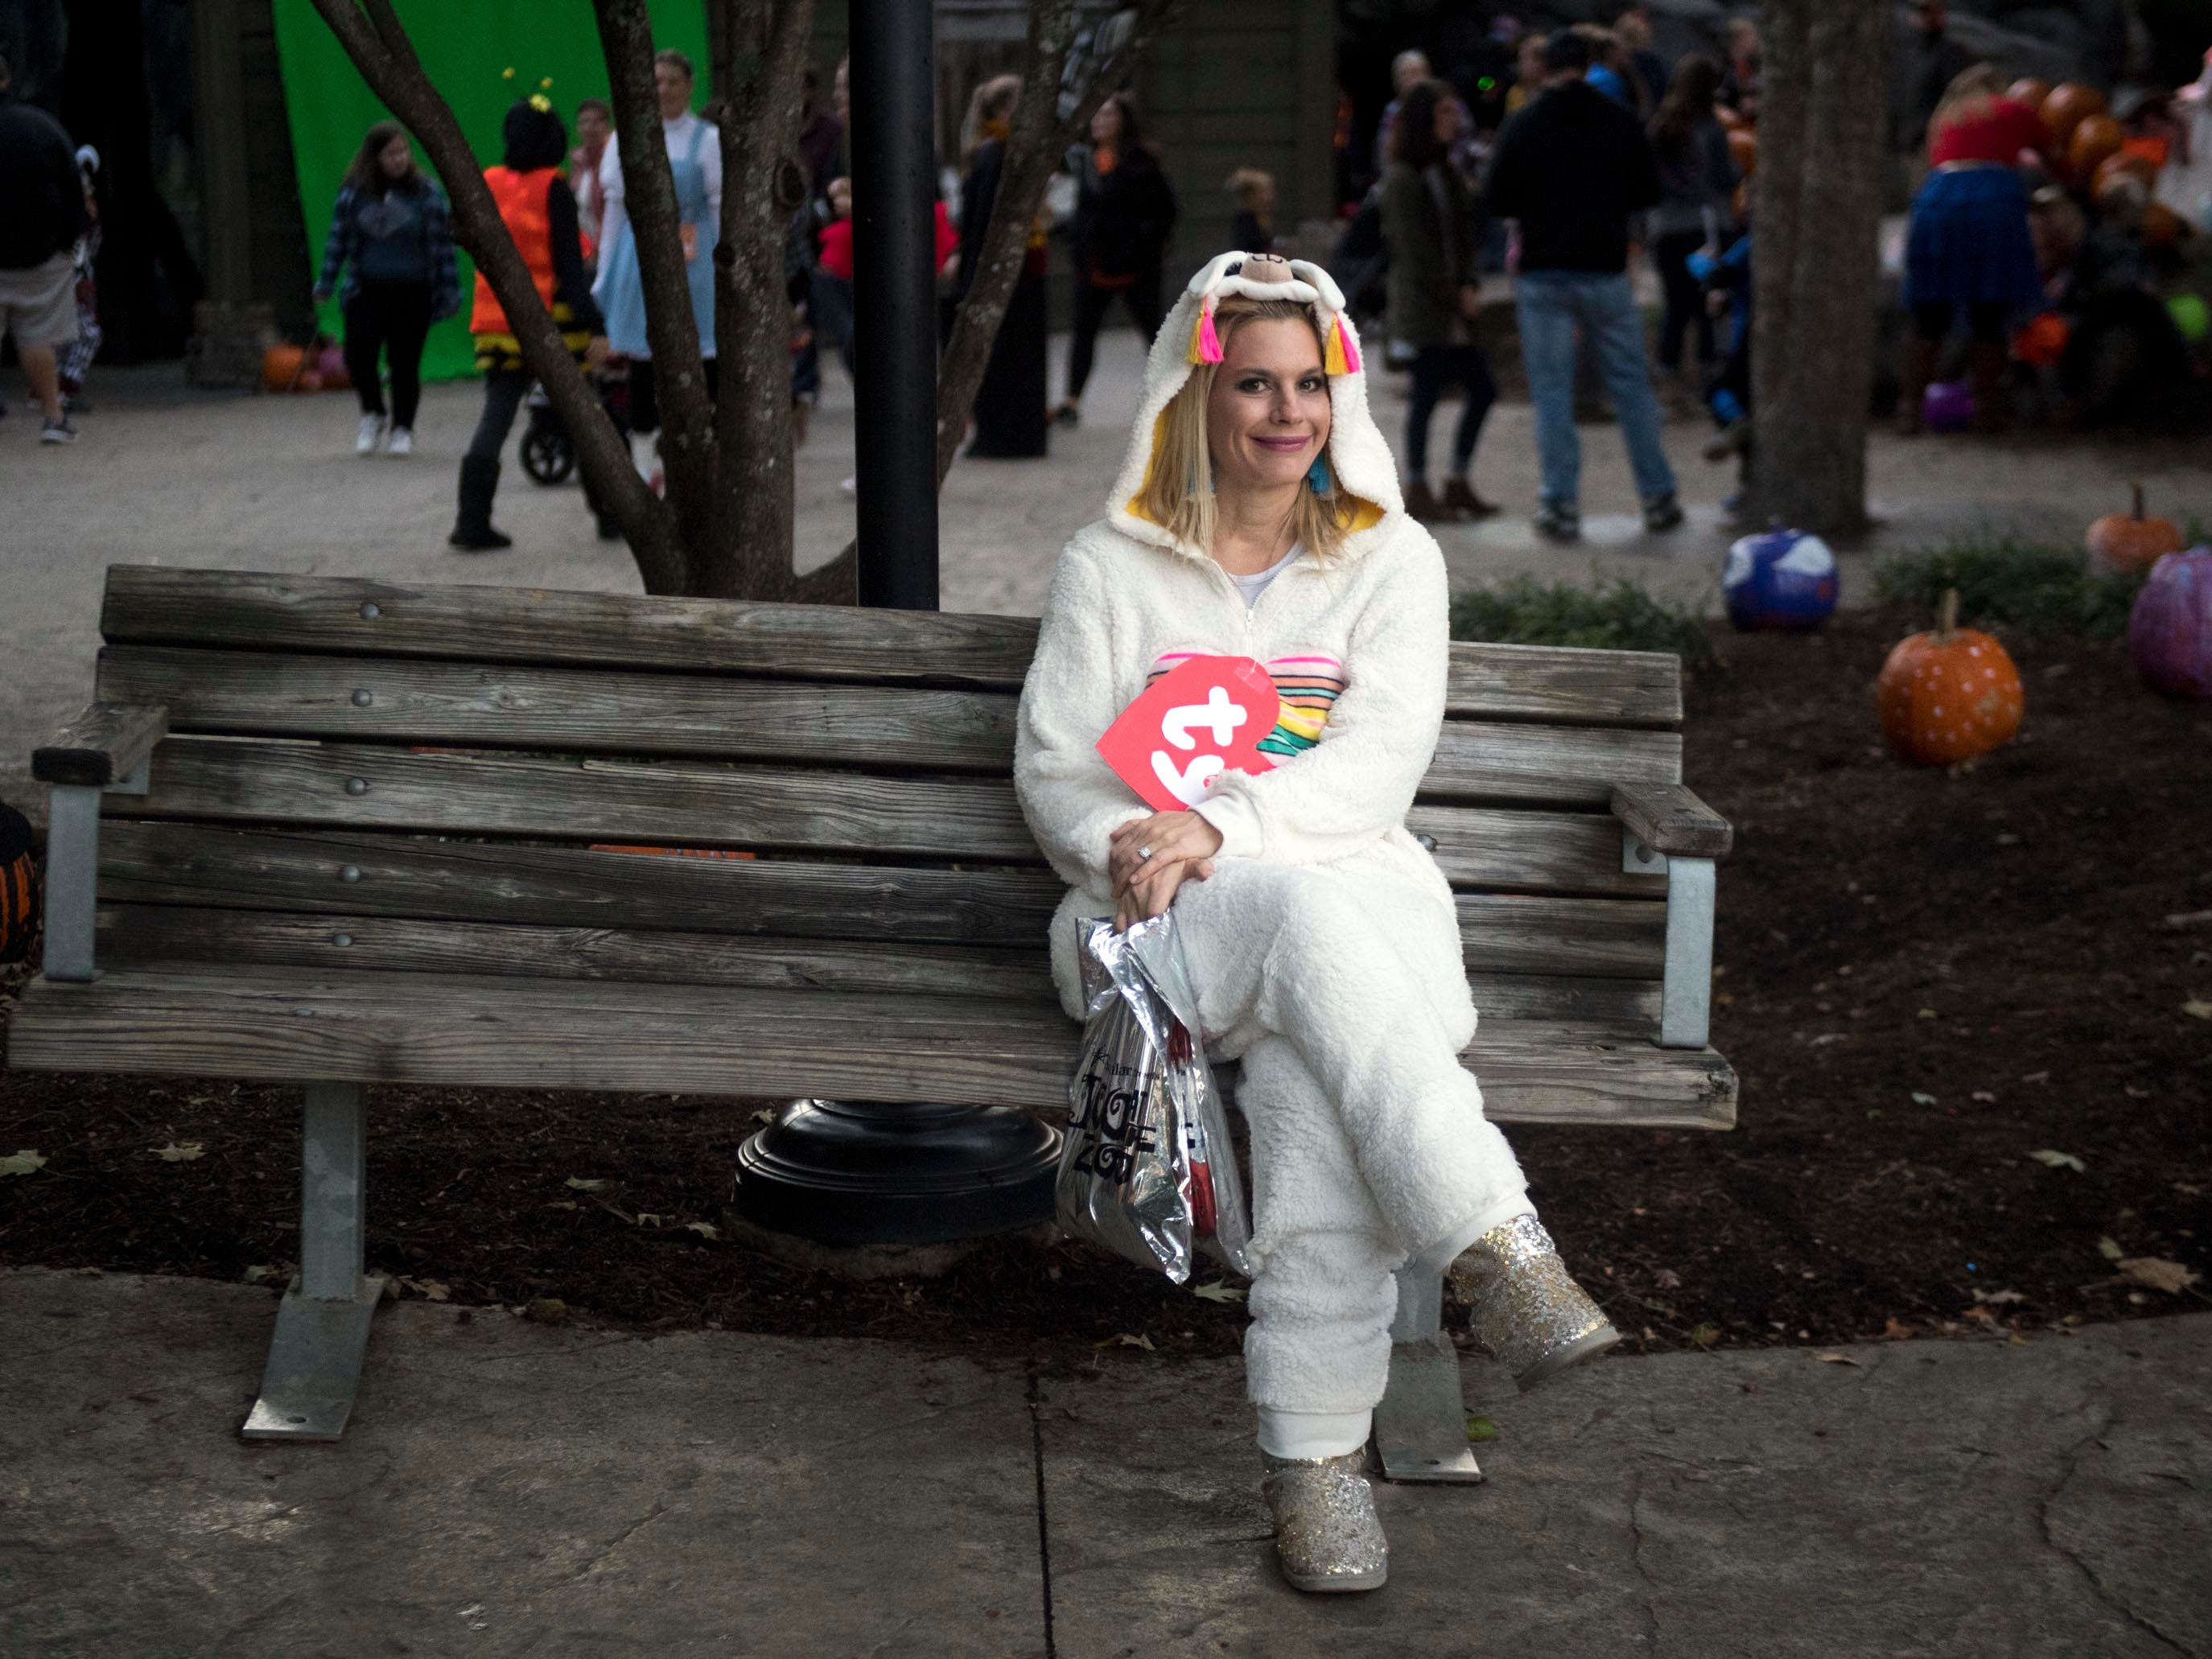 Molly Leita takes a moment to rest during Zoo Knoxville's Boo! at the Zoo on Saturday, October 20, 2018.